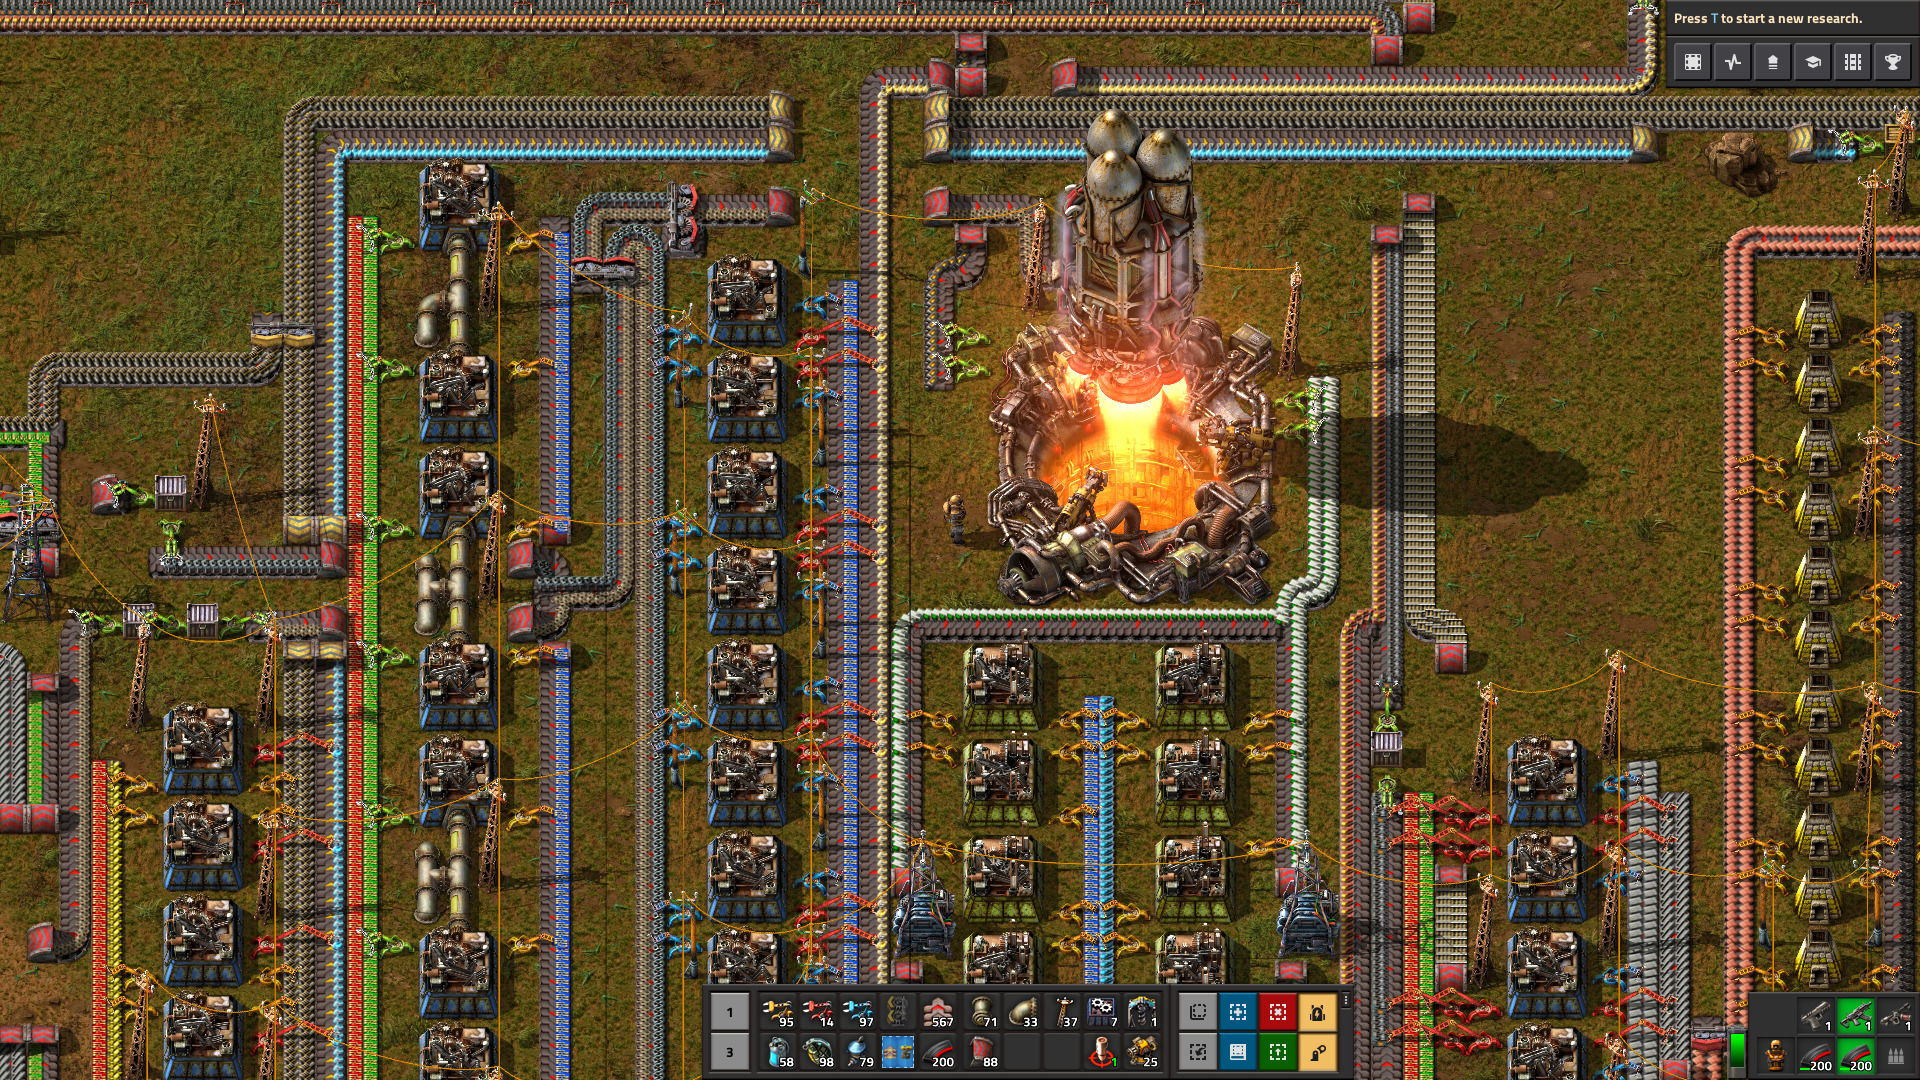 A screenshot showing, from an aerial view, a complex production line of little machines and engines in Factorio. They are arranged around the glowing eye of a huge furnace.